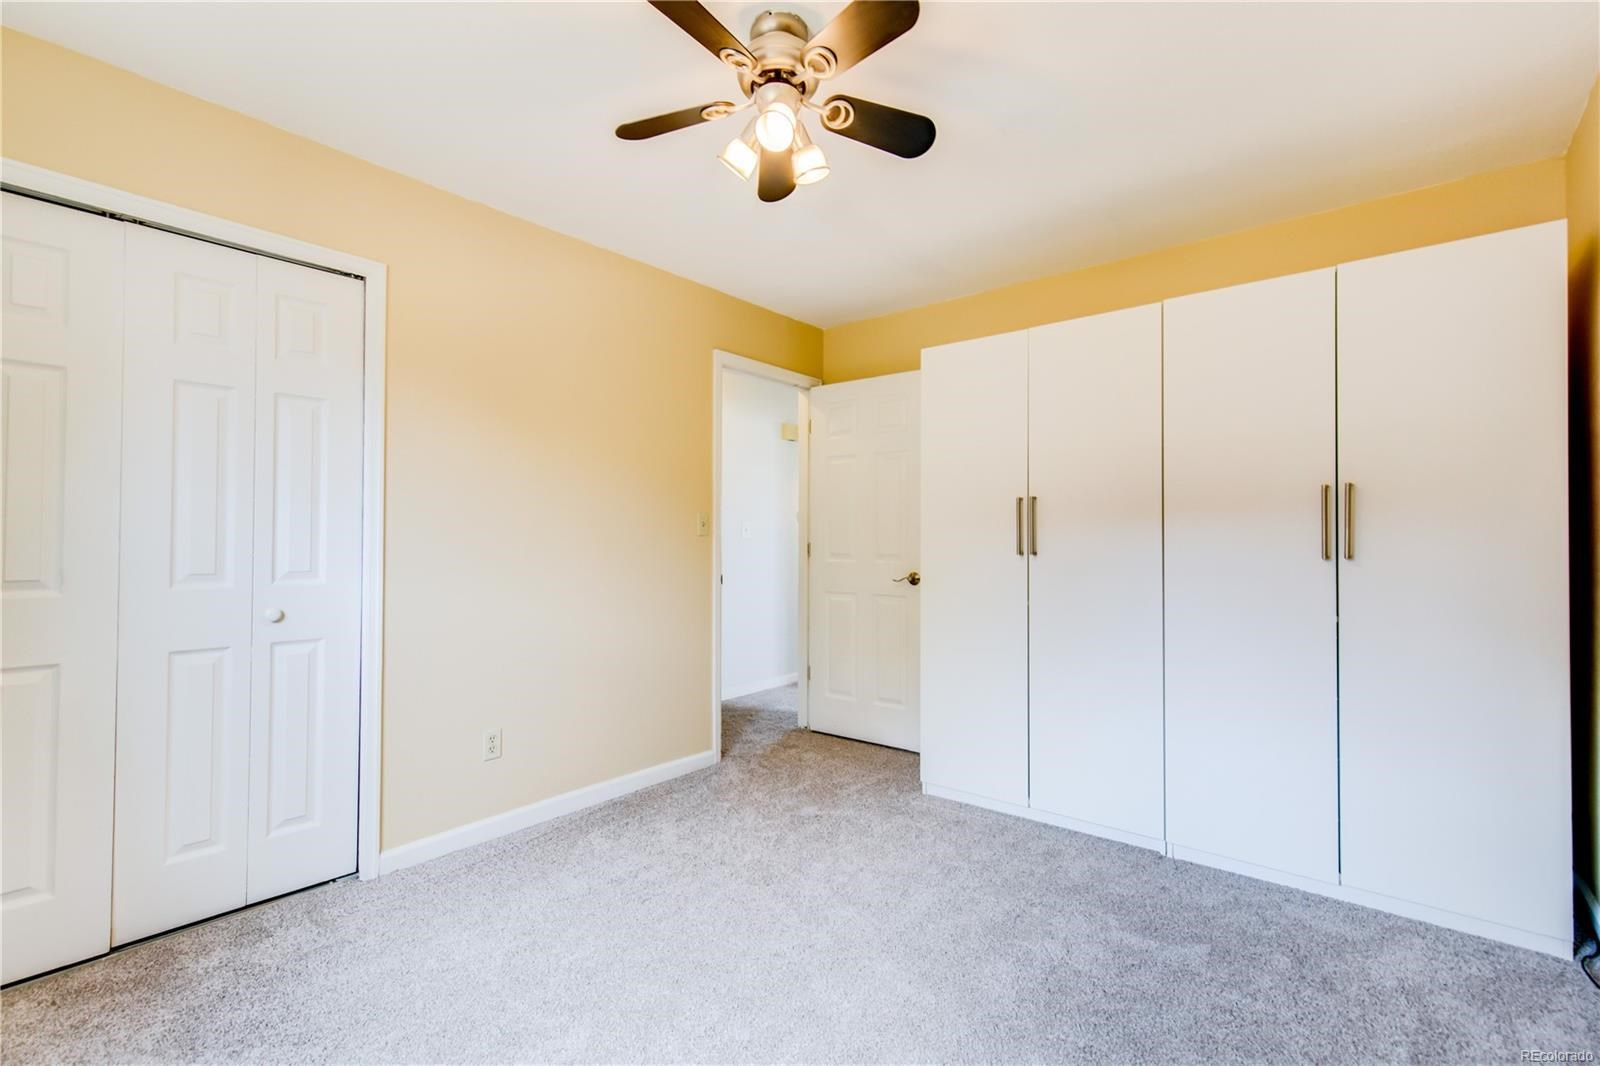 MLS# 5137325 - 12 - 6156 W 75th Place, Arvada, CO 80003